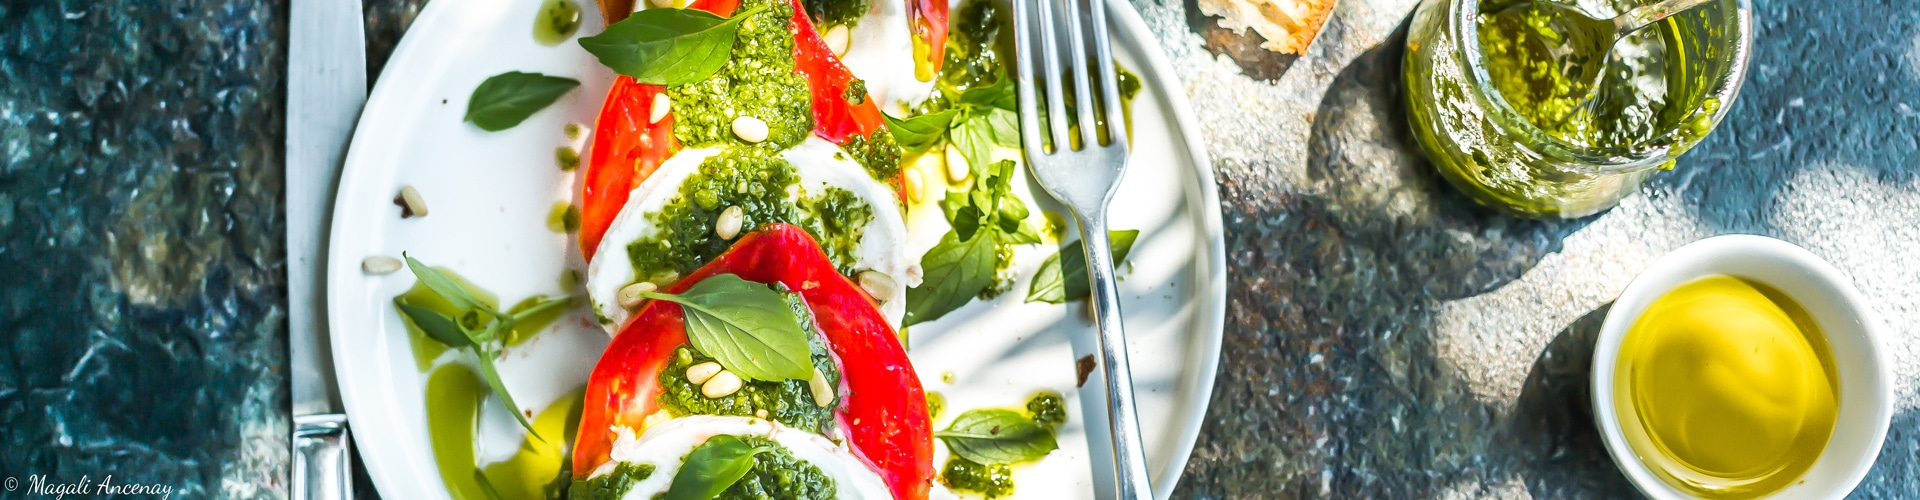 huile-olive-france-salade-tomates-mozzarella-pesto-basilic